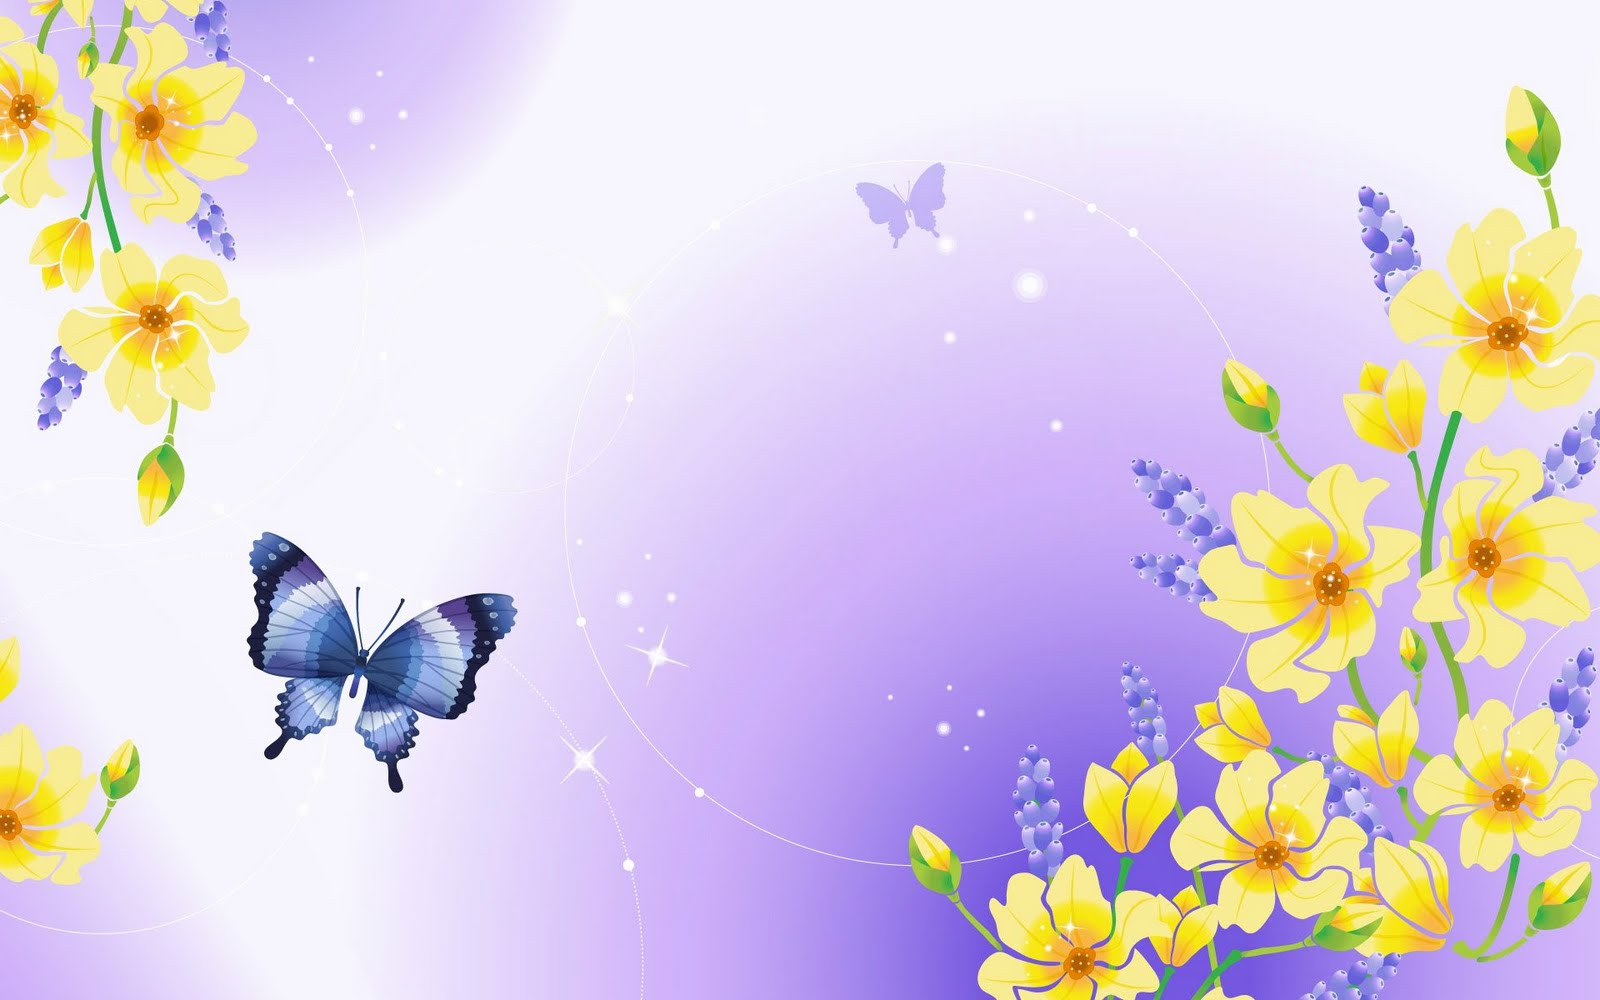 Picture Of A Beautiful World Cartoon Fantasy Wallpaper My Image